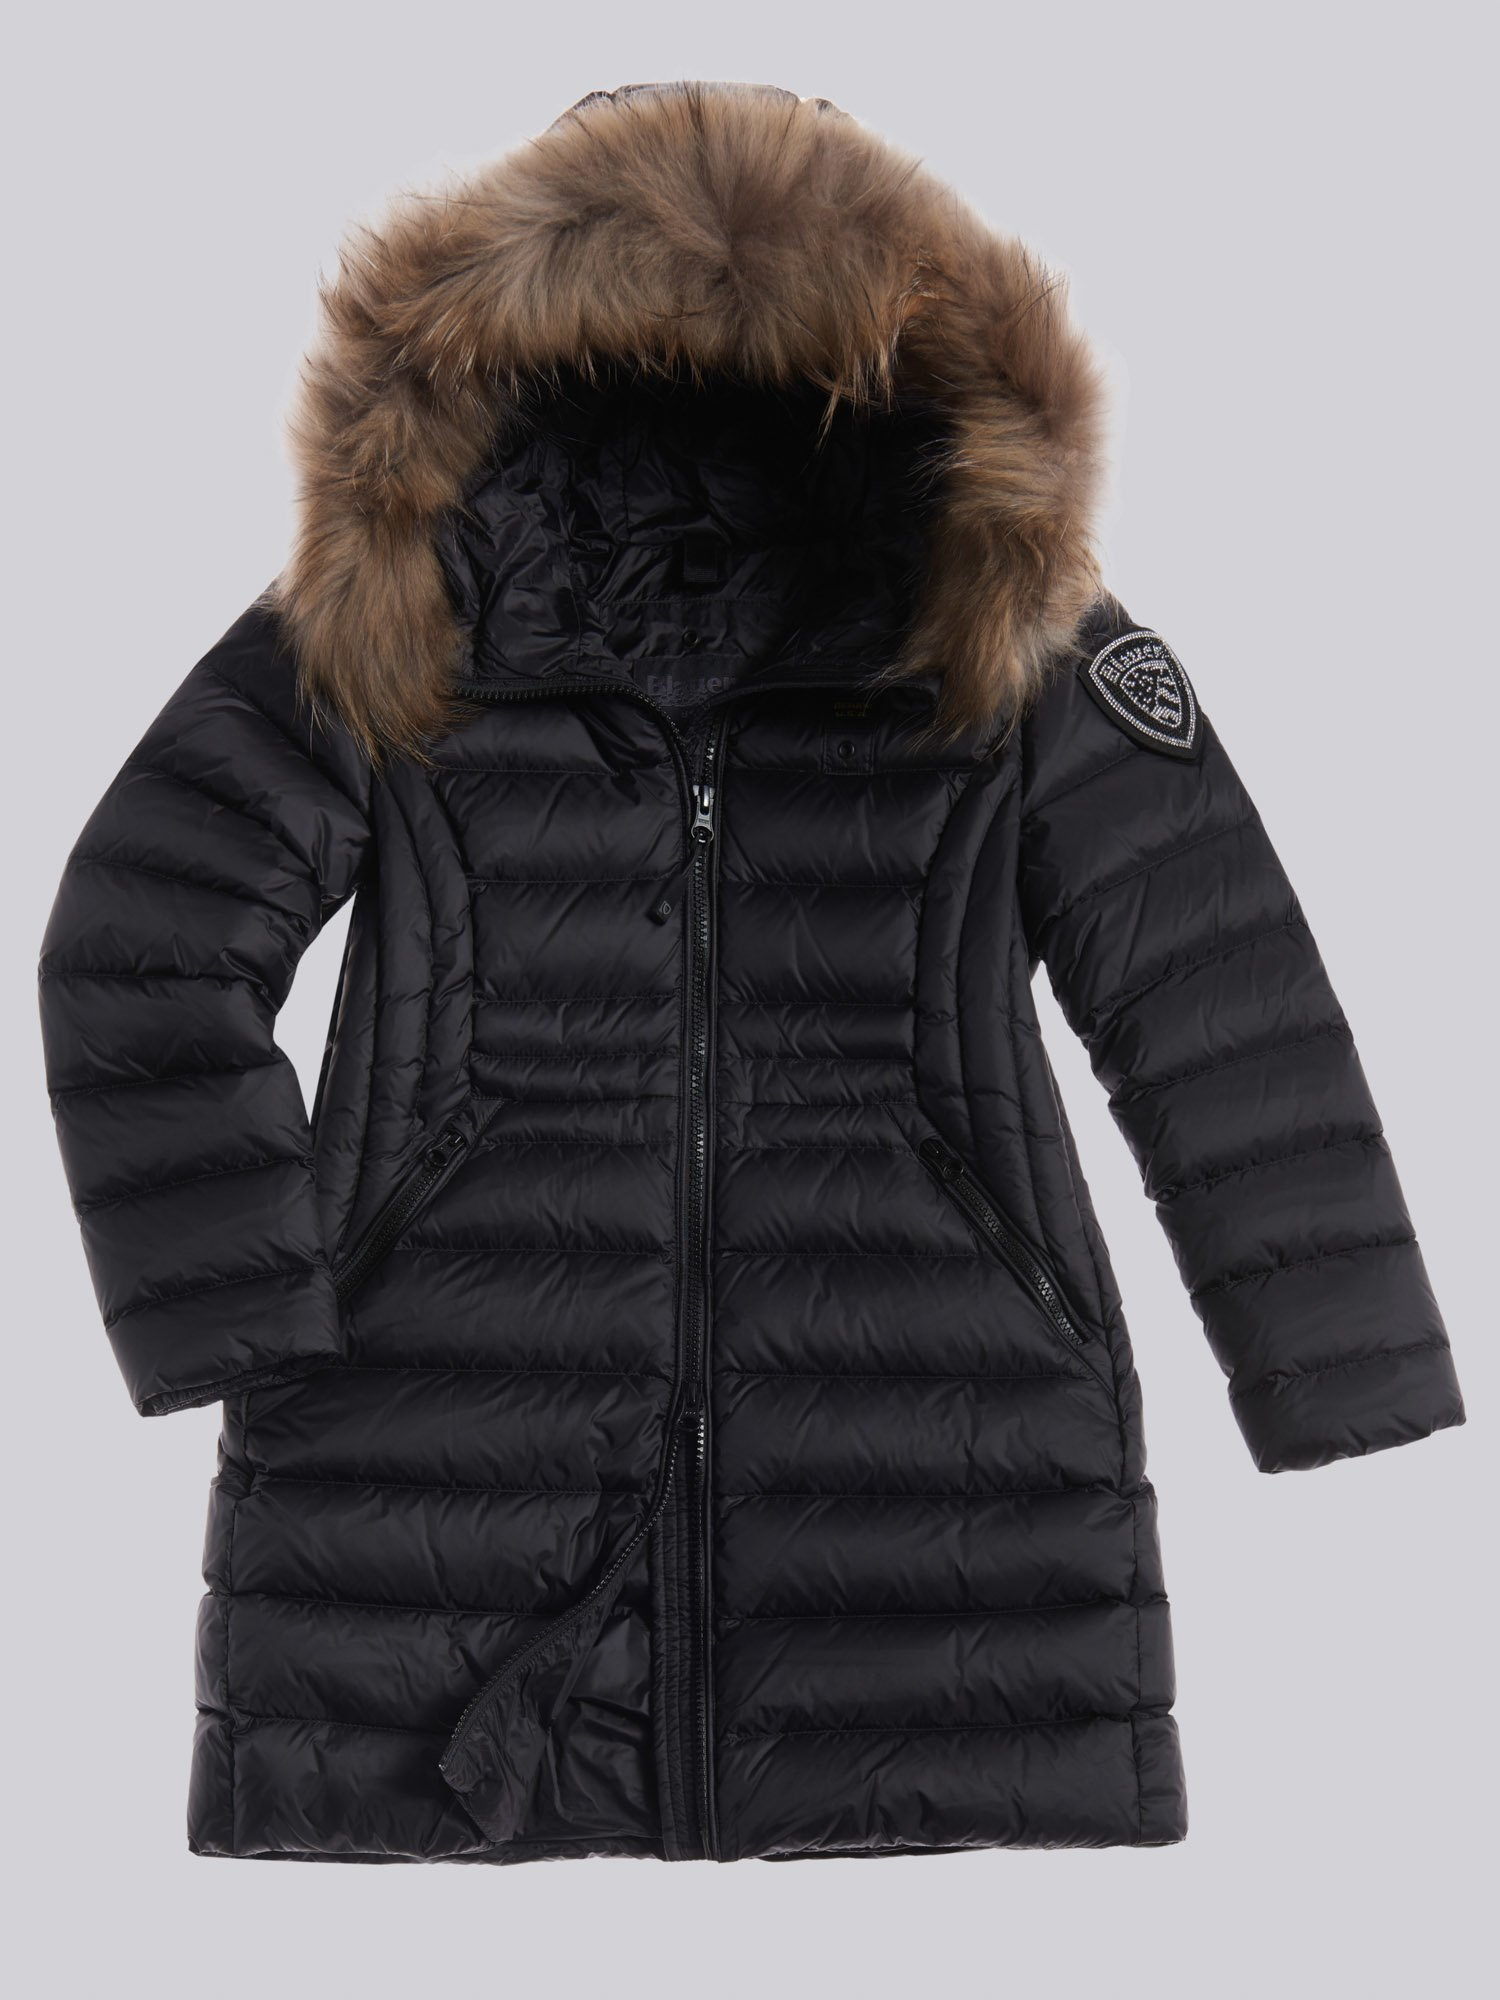 KATHRYN LONG FLARED DOWN JACKET - Blauer